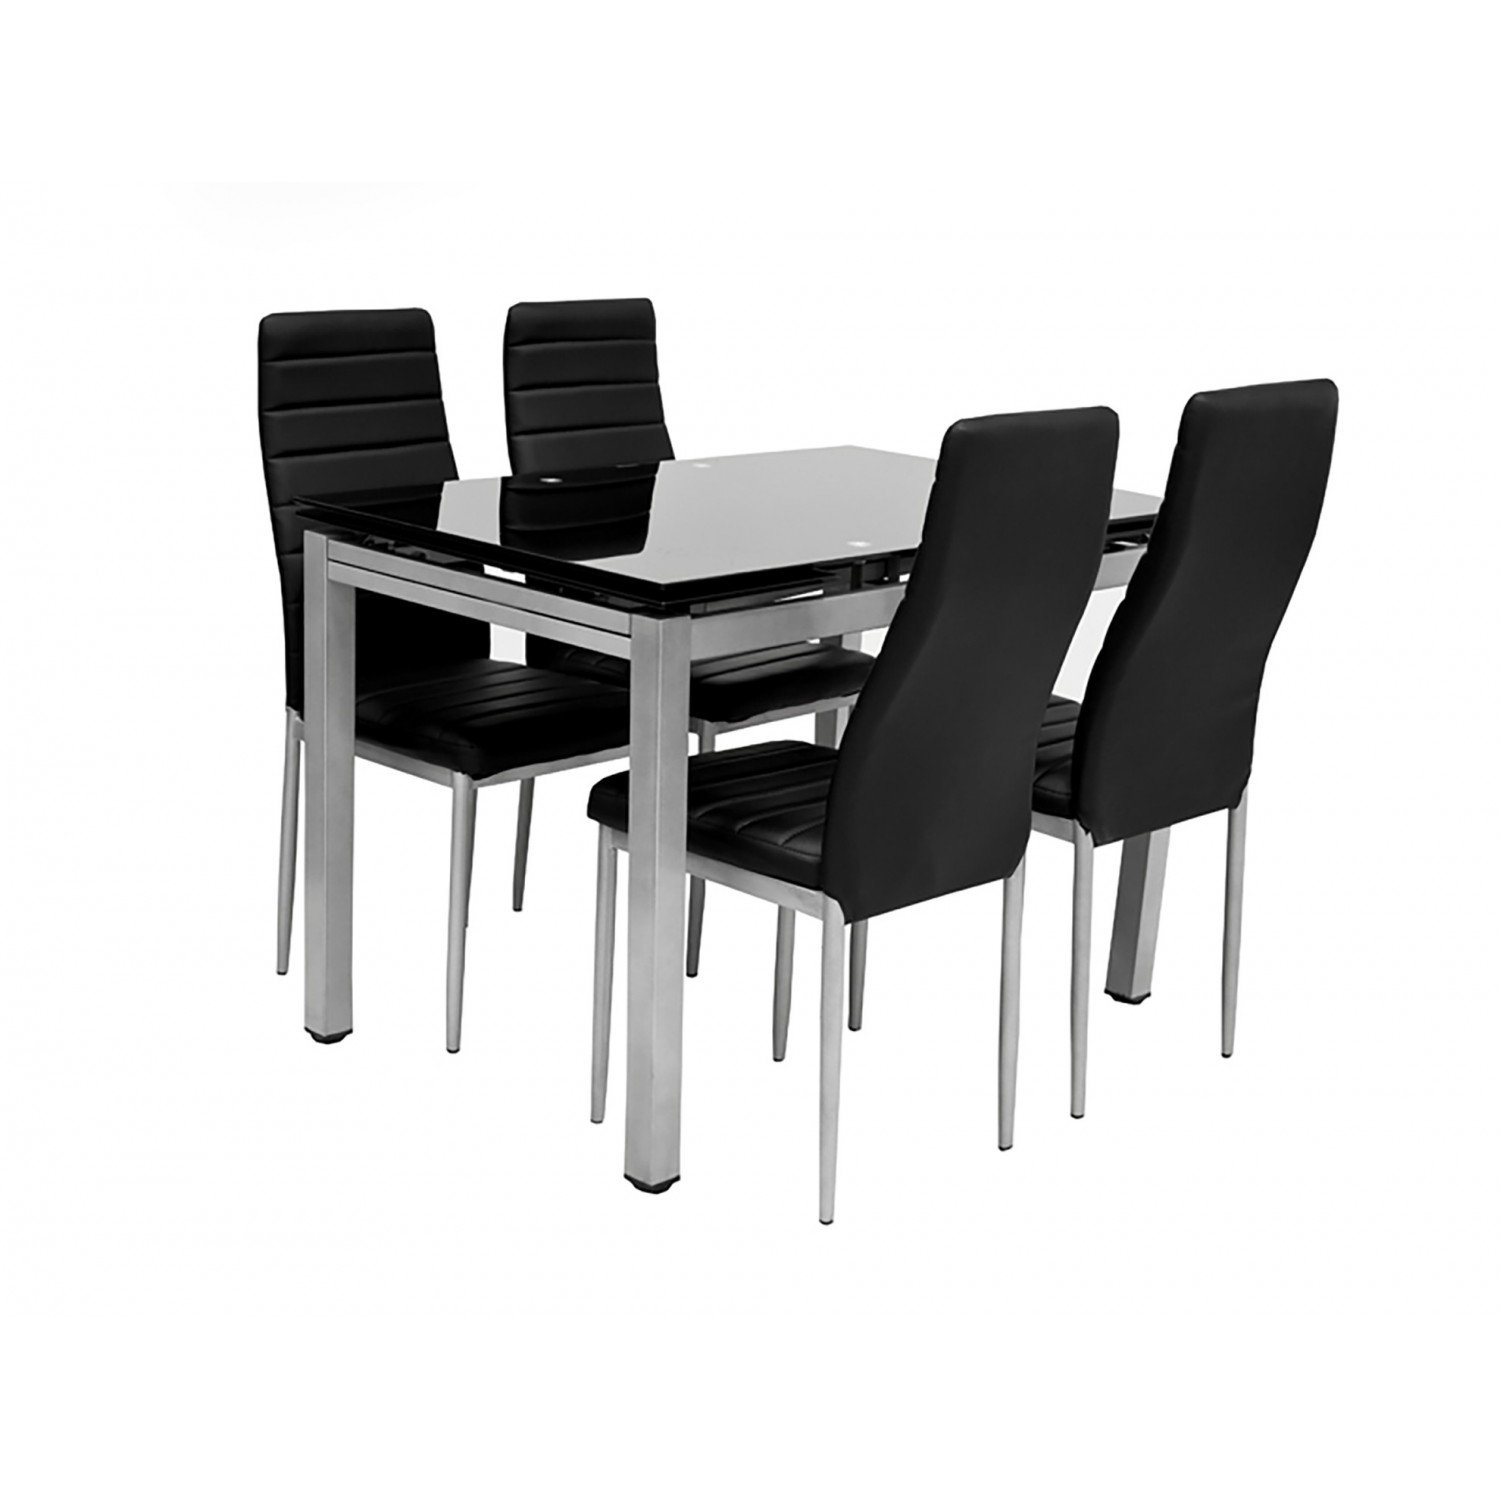 Awesome table et chaises de cuisine noire contemporary for Ensemble table ronde 4 chaises